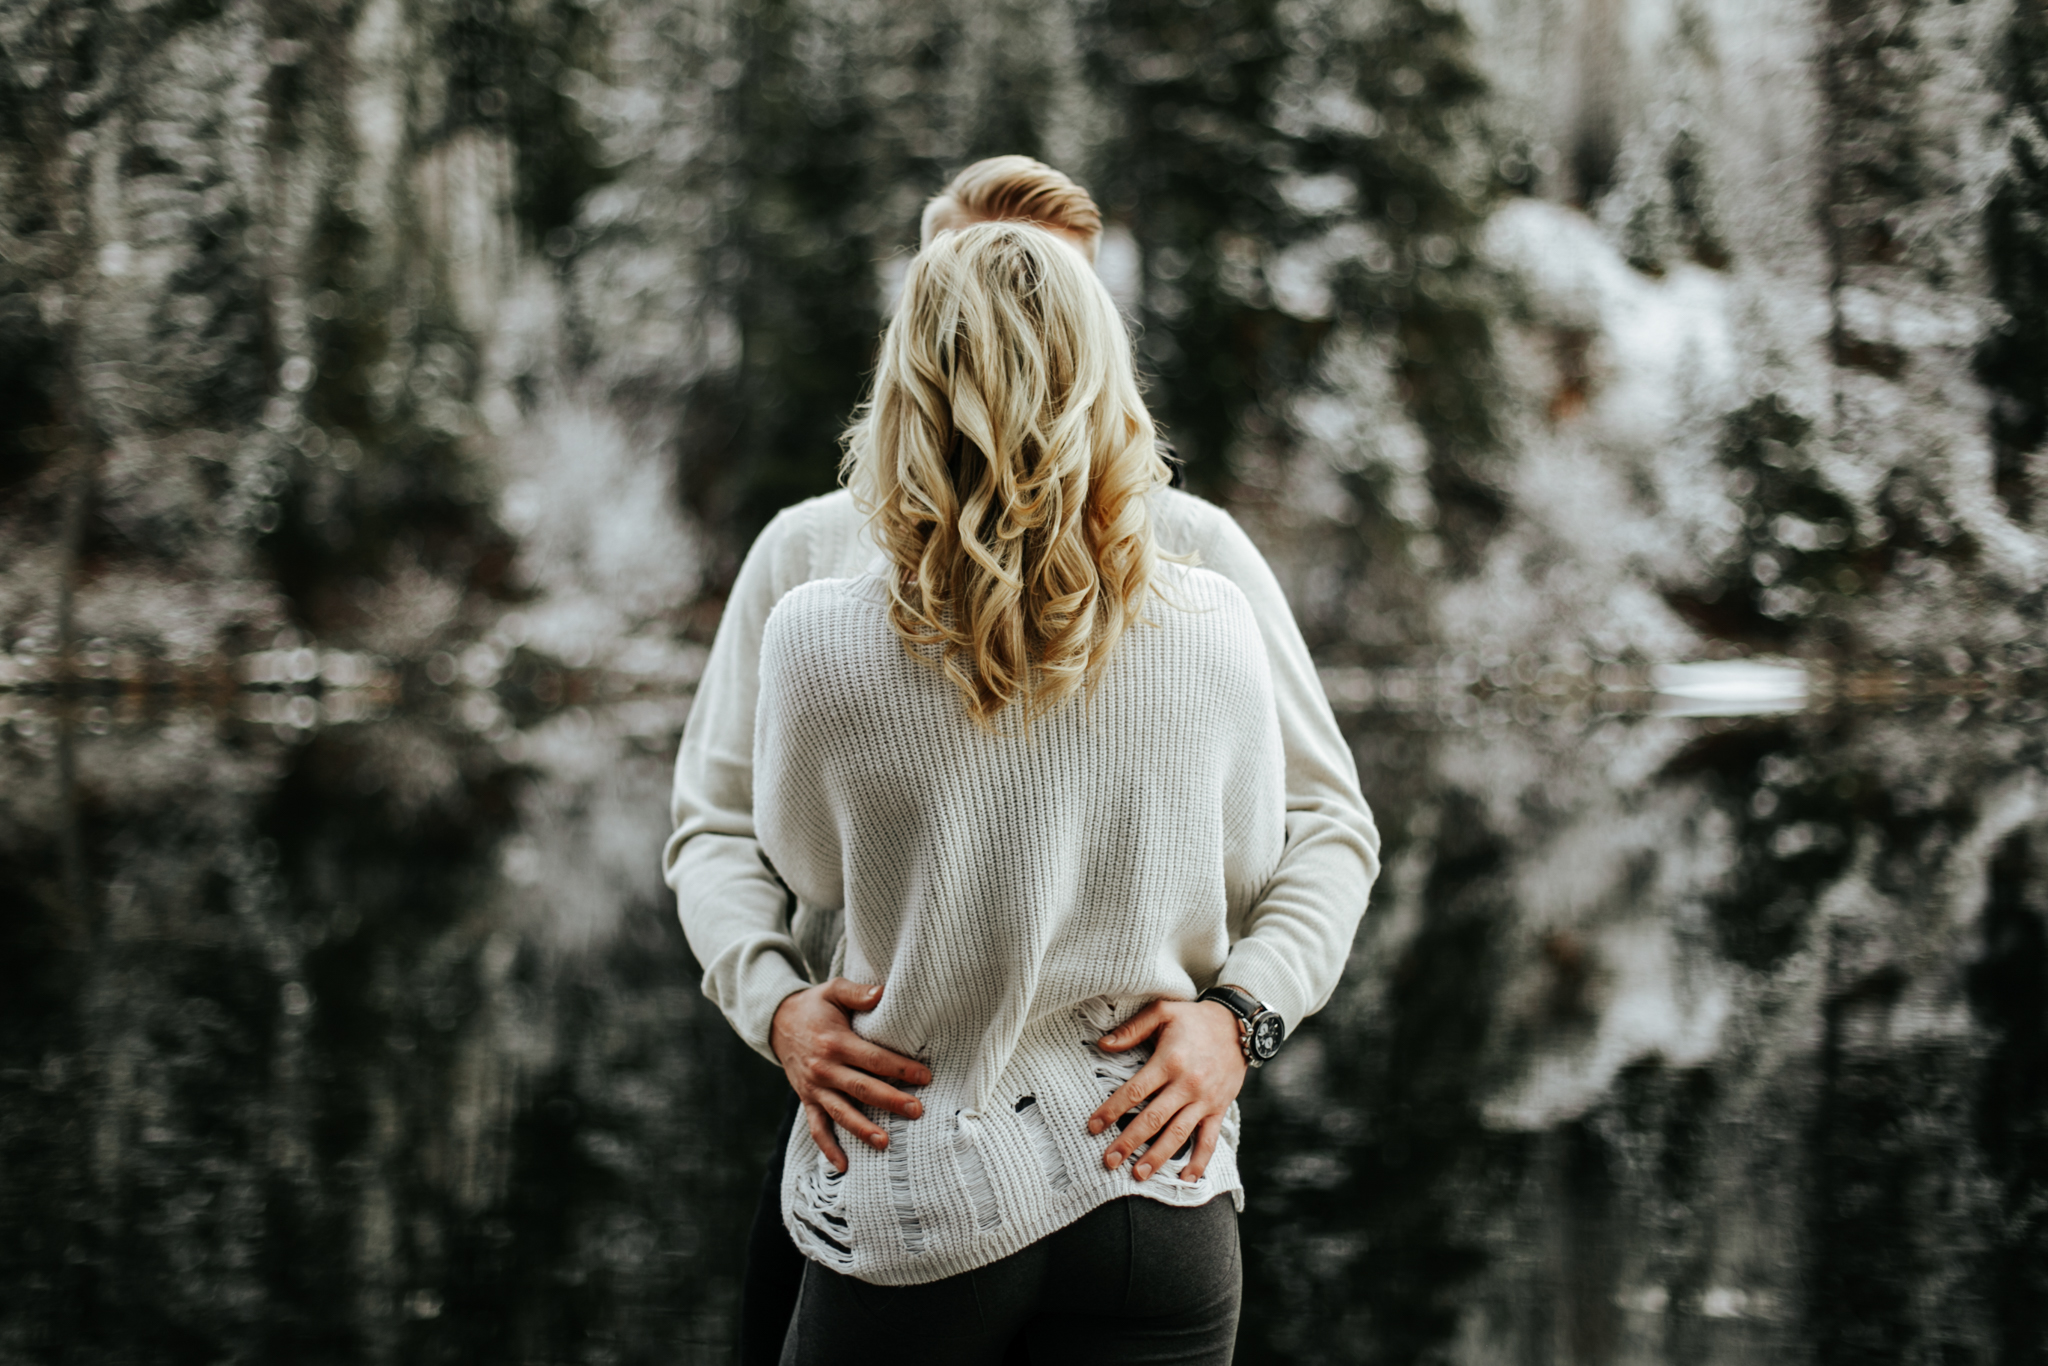 love-and-be-loved-photography-mountain-engagement-ashlyn-rob-perfect-fit-4-u-photo-image-picture-29.jpg